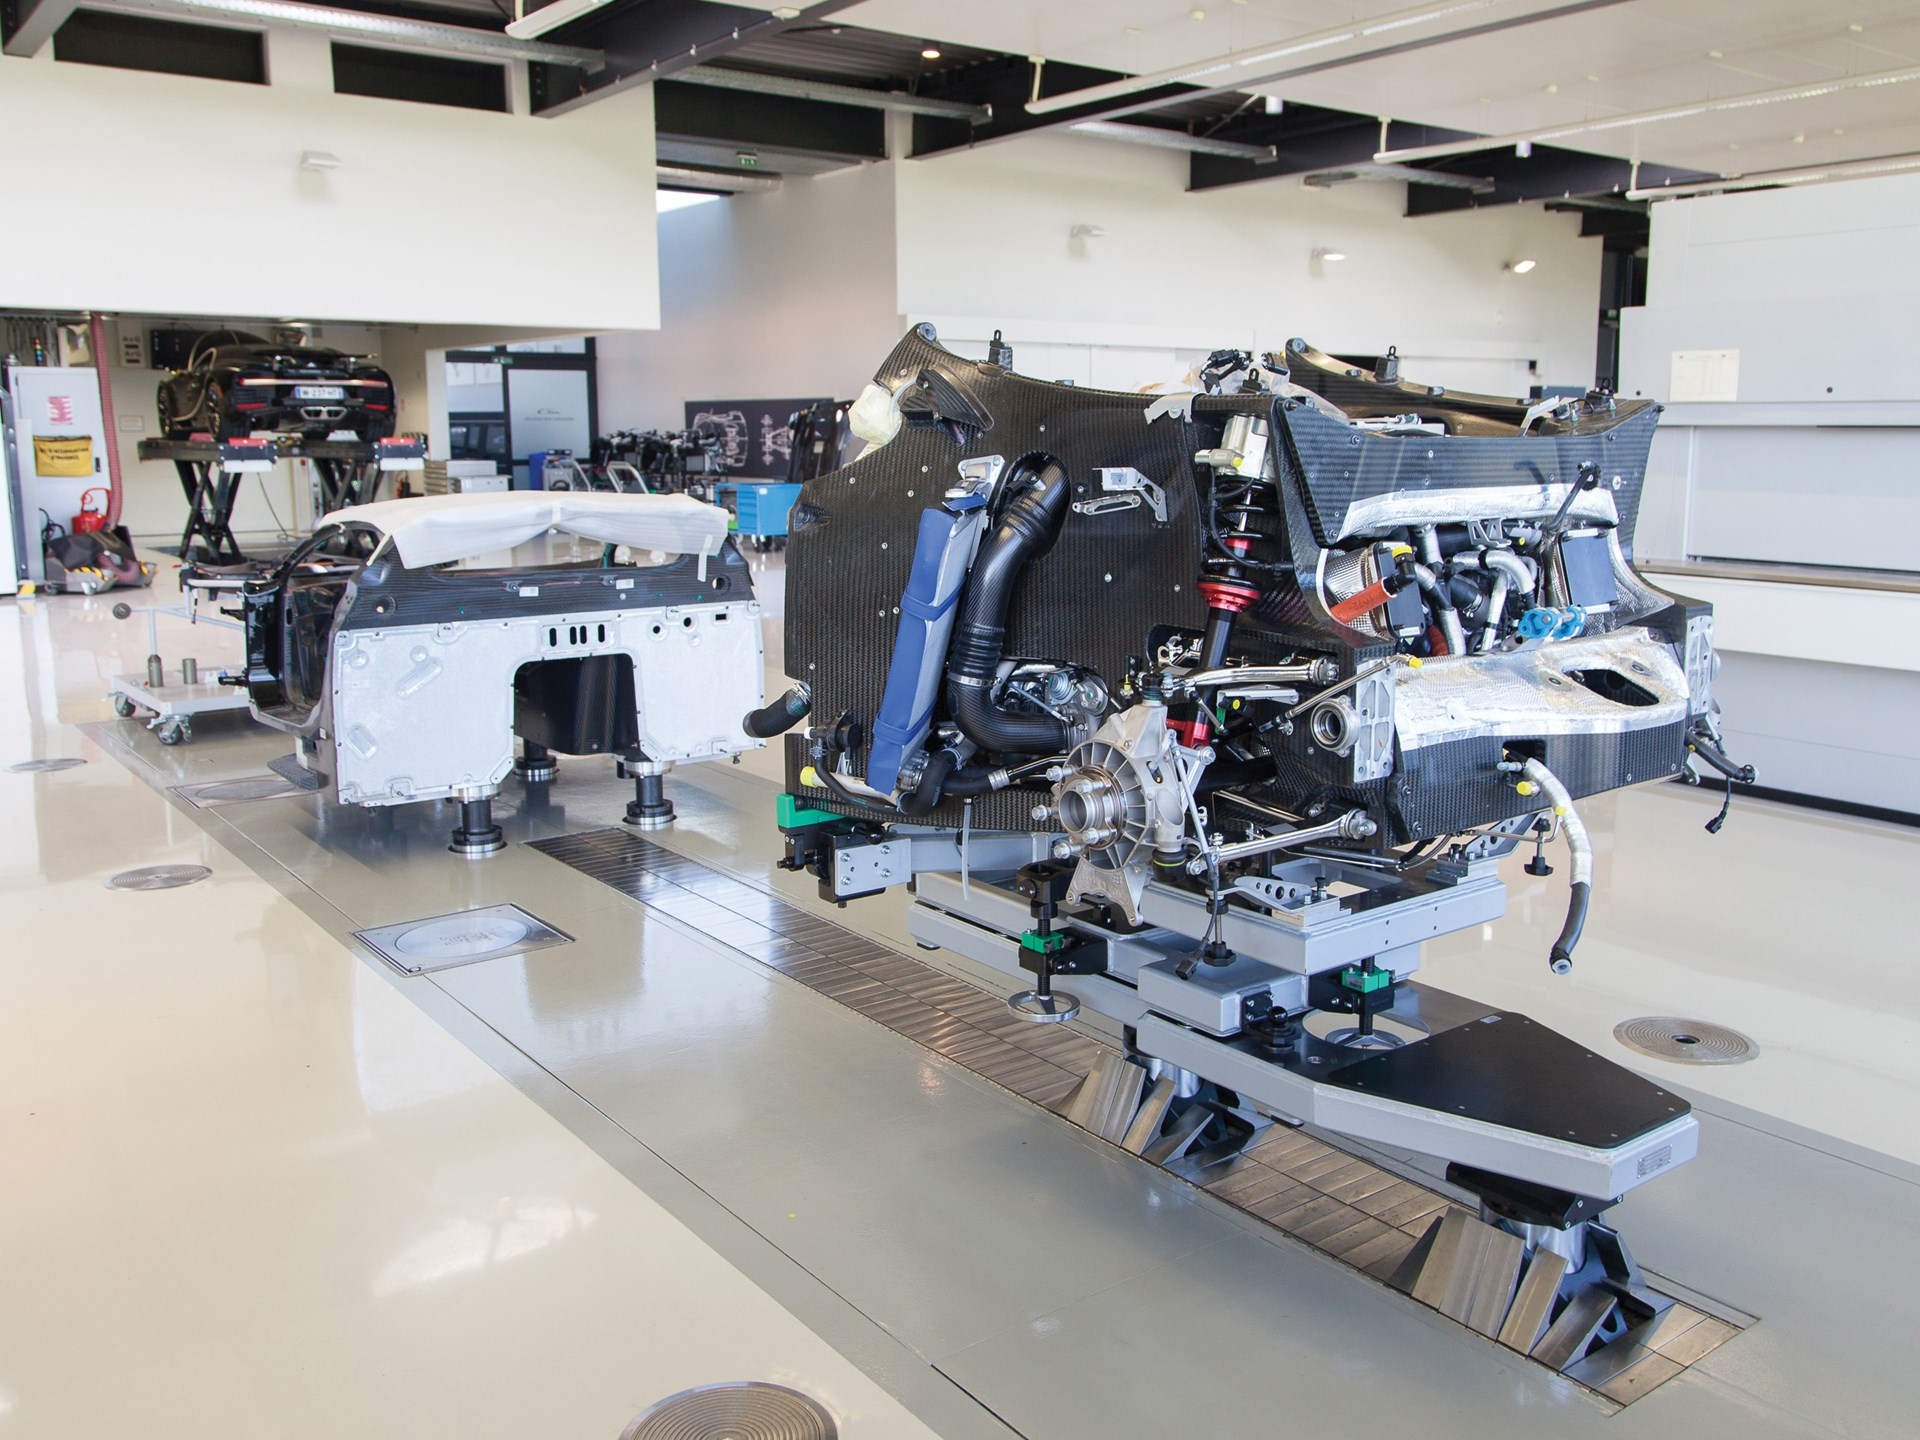 Chassis 069 during production at Bugatti's facilities in Molsheim, France.